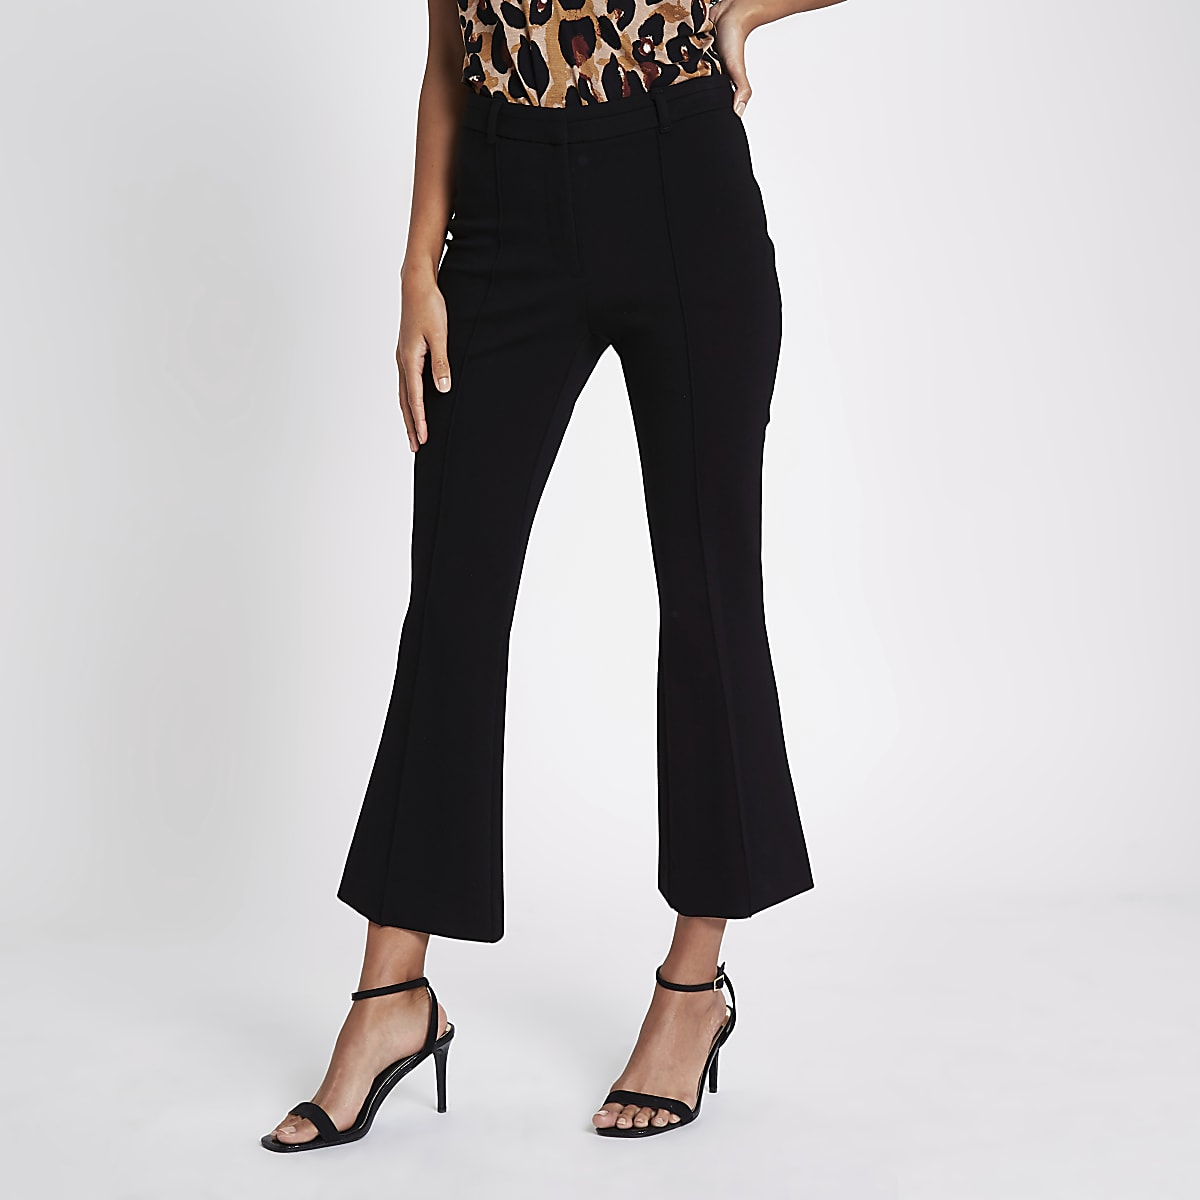 Black ponte flare trousers​